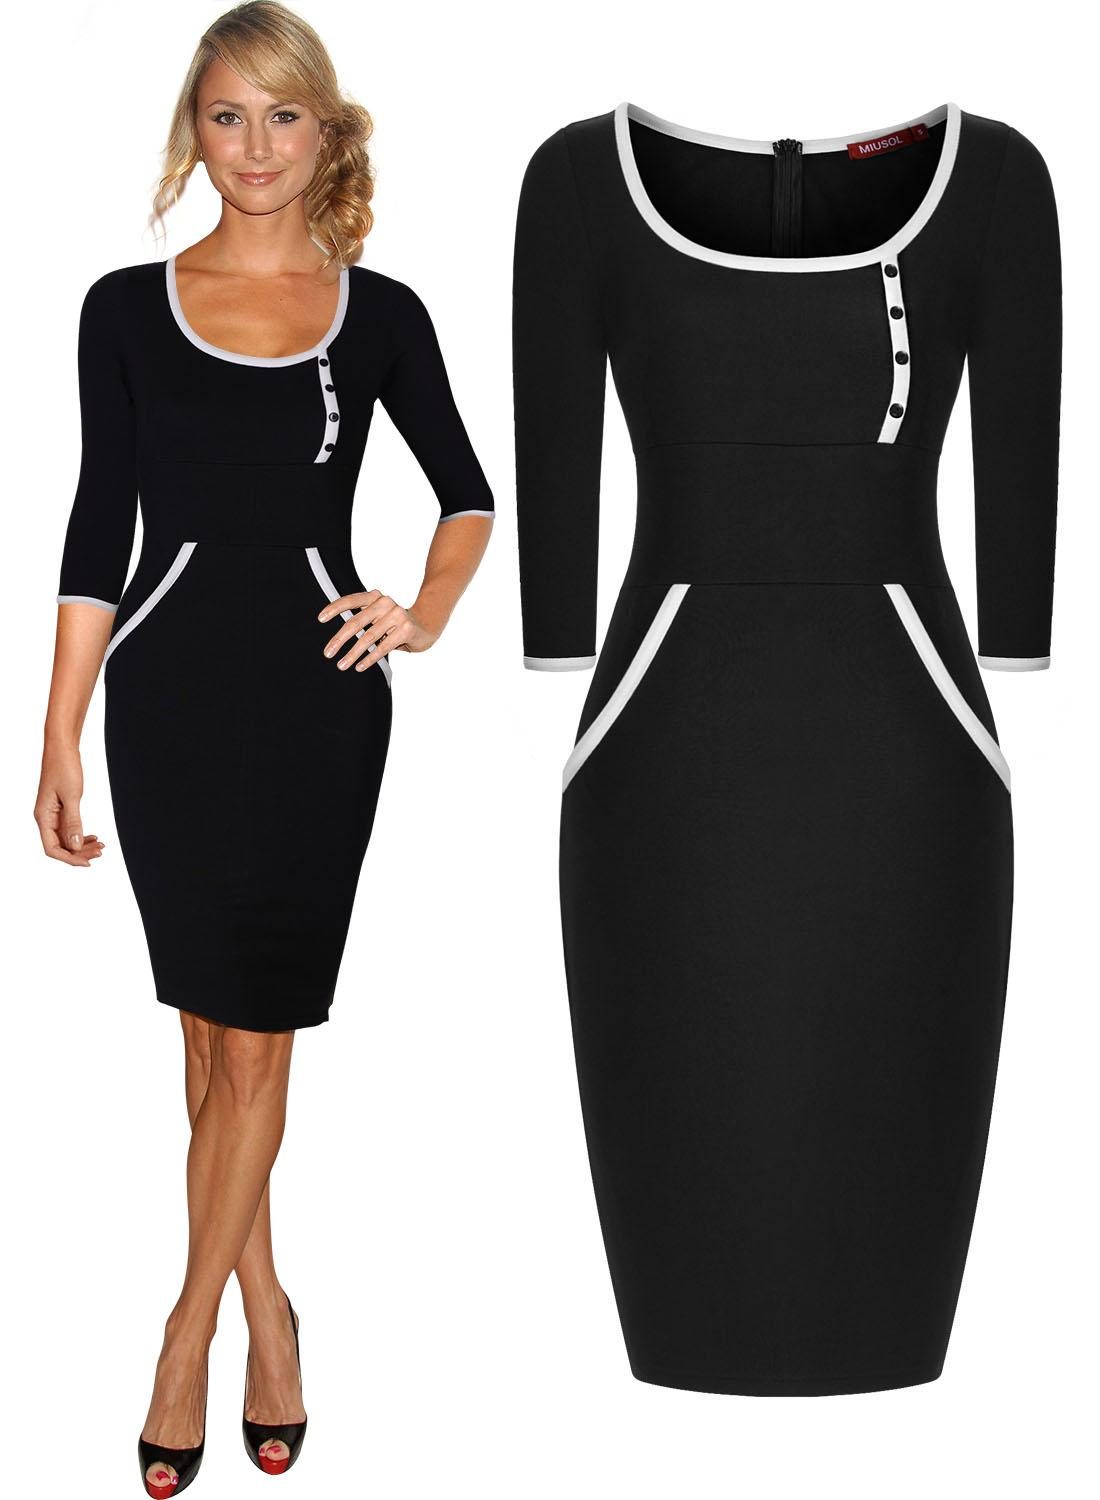 7f81a5ed202 Women s Celeb Bodycon Evening Sexy Pencil Party Cocktail Work Casual  Dresses Work Dress 3122 Women Dress Work Dress Pencil Dresses Online with   35.92 Piece ...